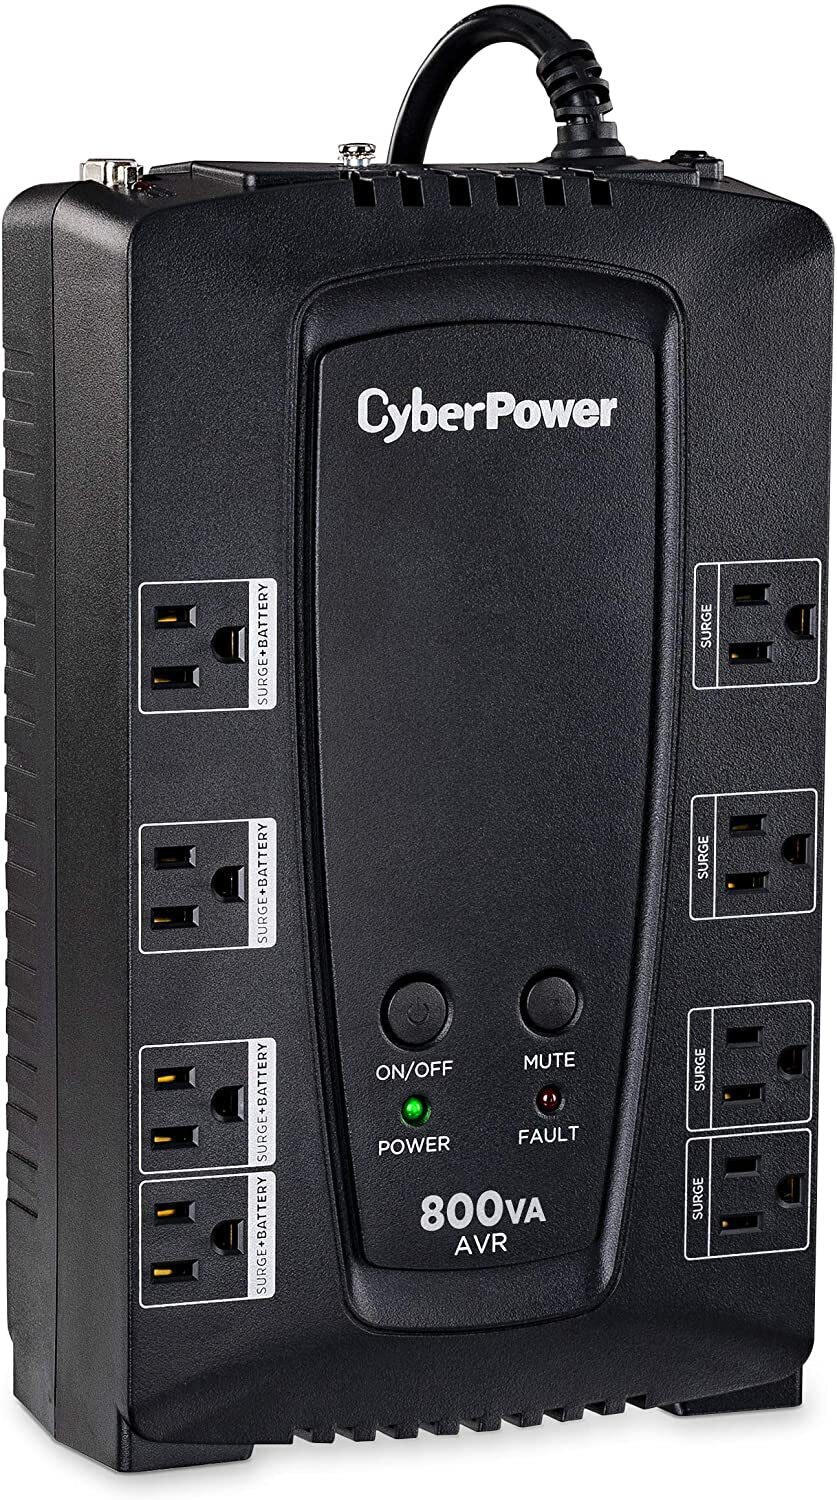 CyberPower Outlets